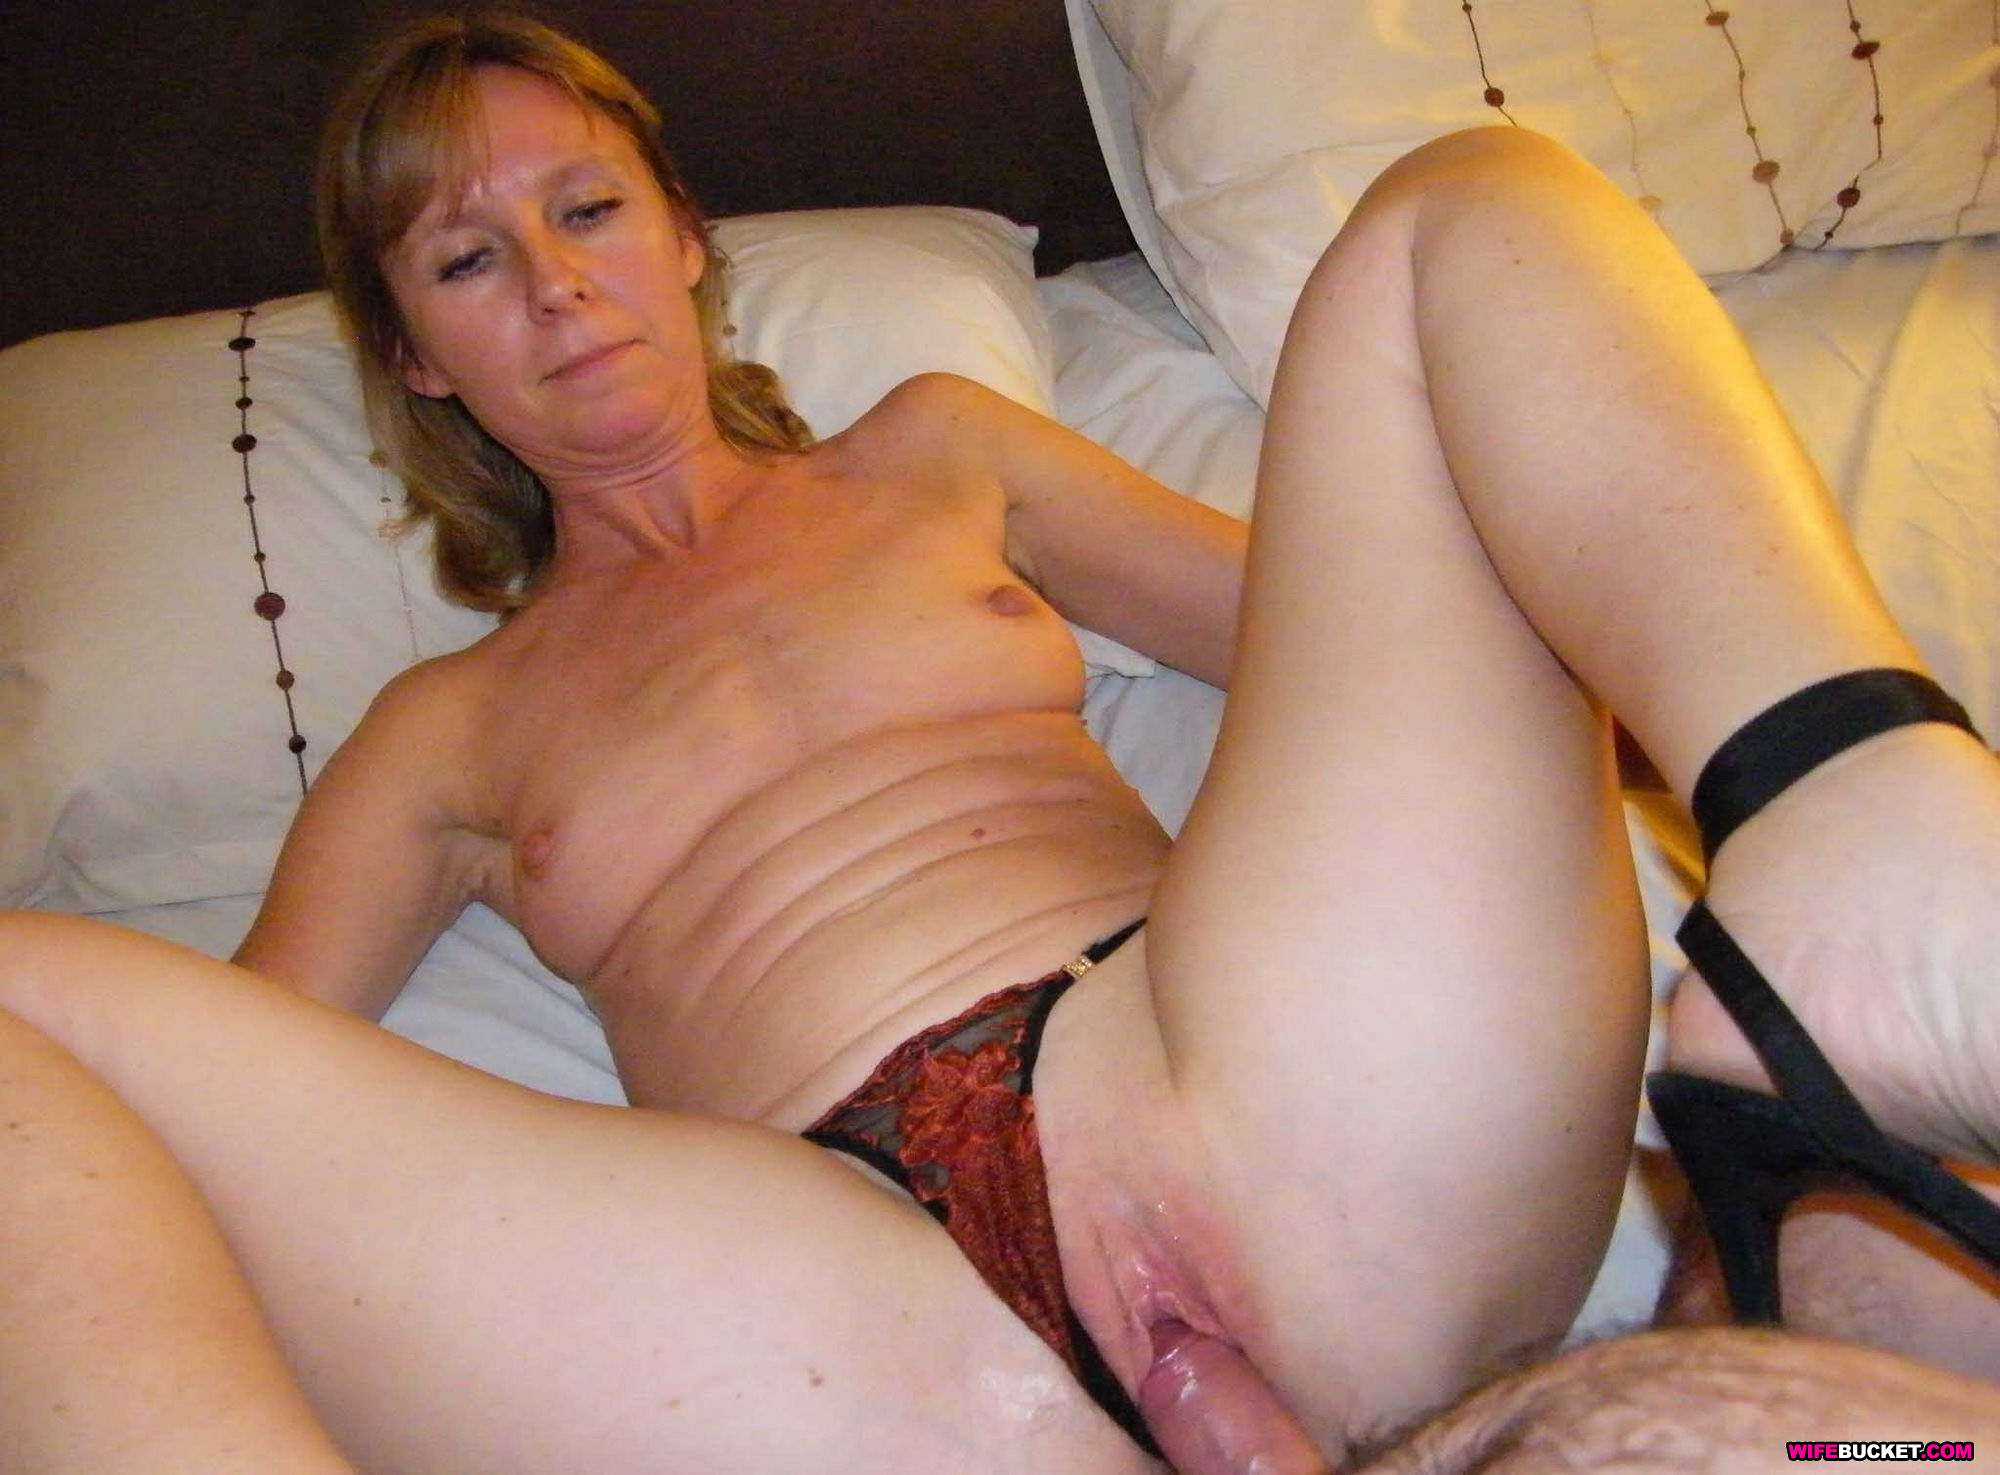 Real life wife swapping important and